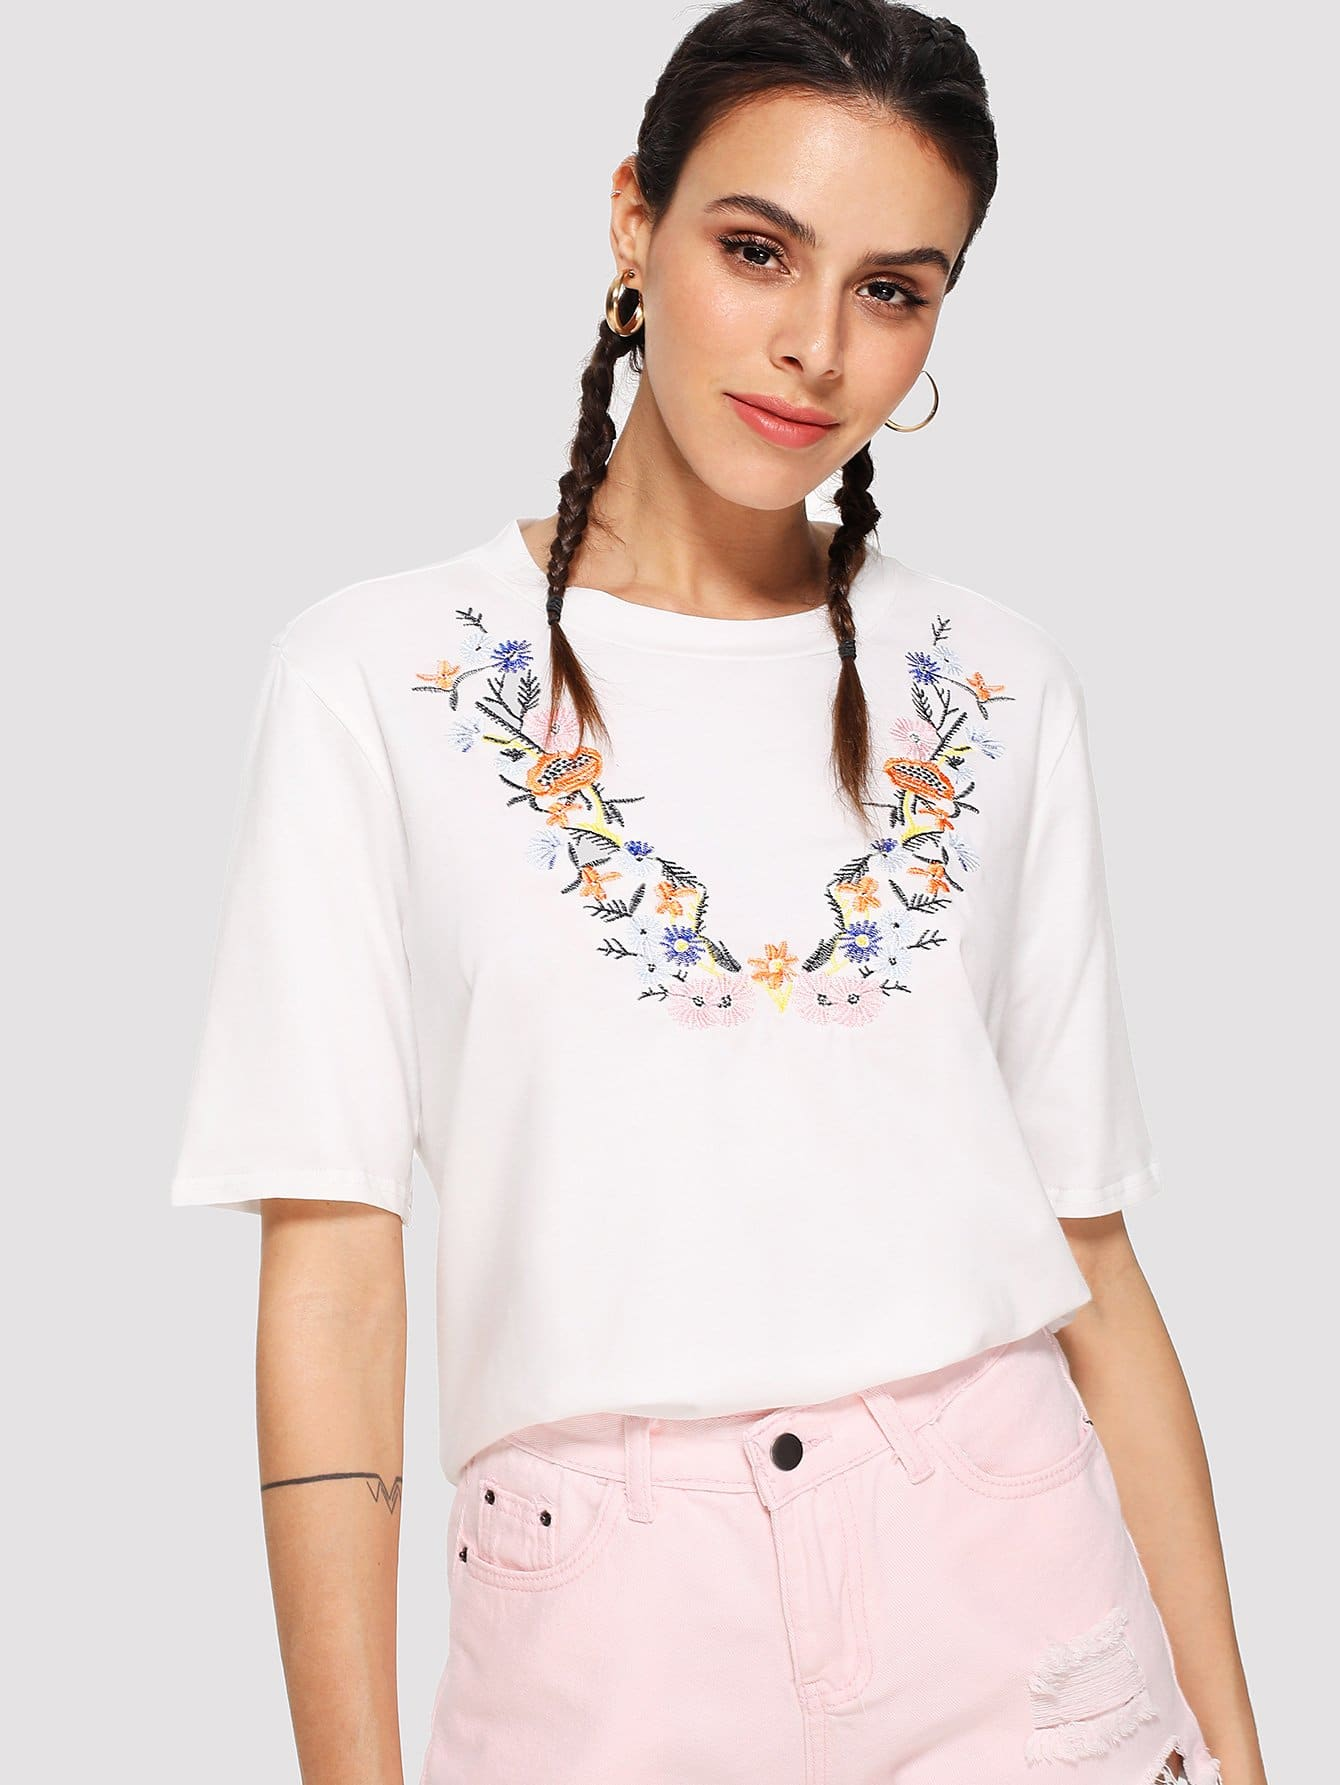 Floral Embroidered Tee butterfly embroidered tee